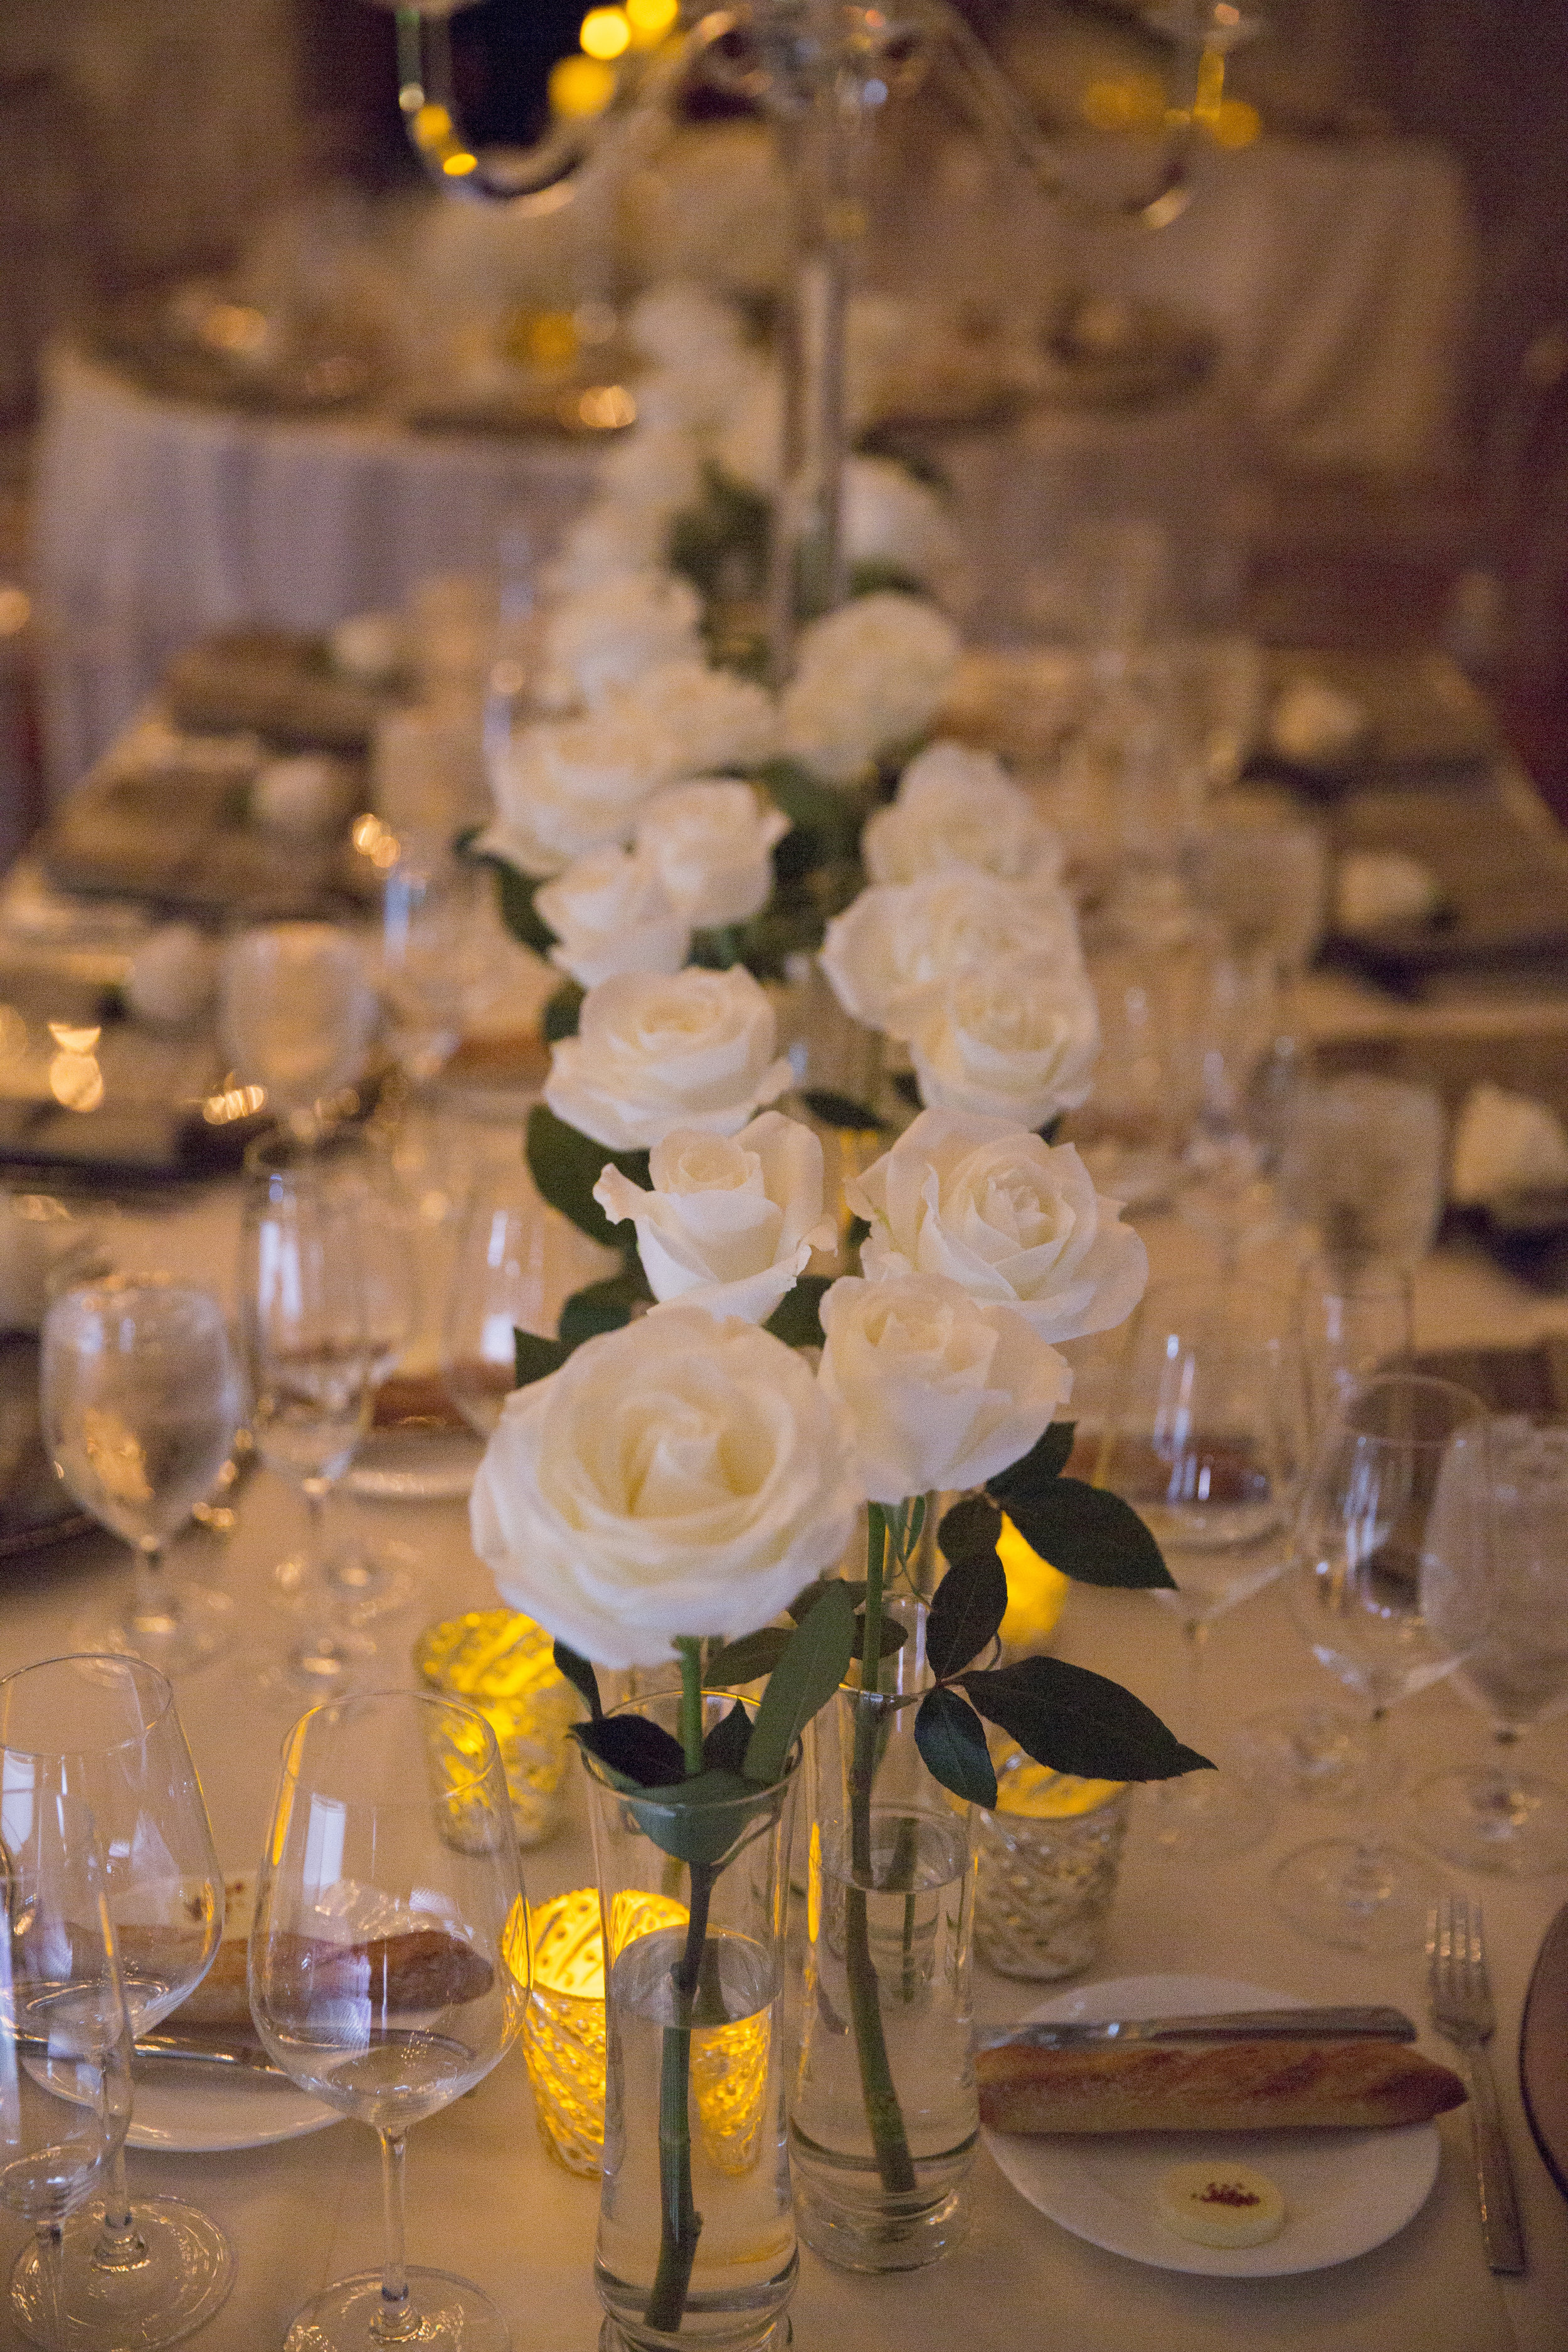 Bold white roses in straight line on long wedding table. WEDDING PLANNING & EVENT DESIGN • Andrea Eppolito Events ,PHOTOGRAPHY • AltF Photography ,FLORAL AND DECOR DESIGN & PRODUCTION • Destinations by Design , CATERING • Mandarin Oriental Las Vegas , COCKTAILS •  The Grand Bevy , WEDDING GOWN •  Galia Lahav ,SHOES •  Jimmy Choo , ACRYLIC MENUS & SEATING CHART•  She Paperie